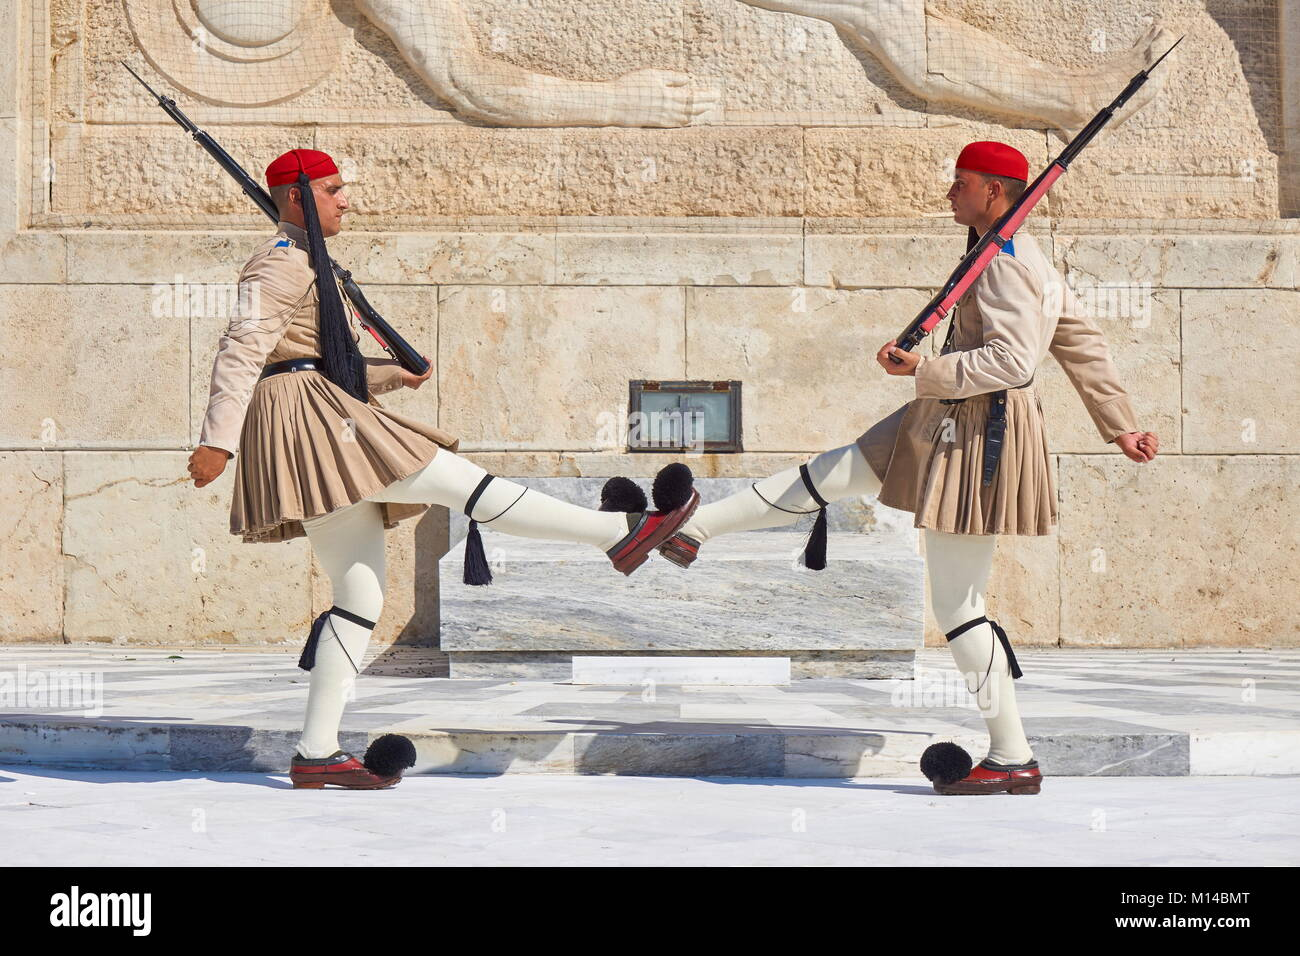 Athens - Evzones changing the guard at the Tomb of the Unknown Soldier, Greece - Stock Image